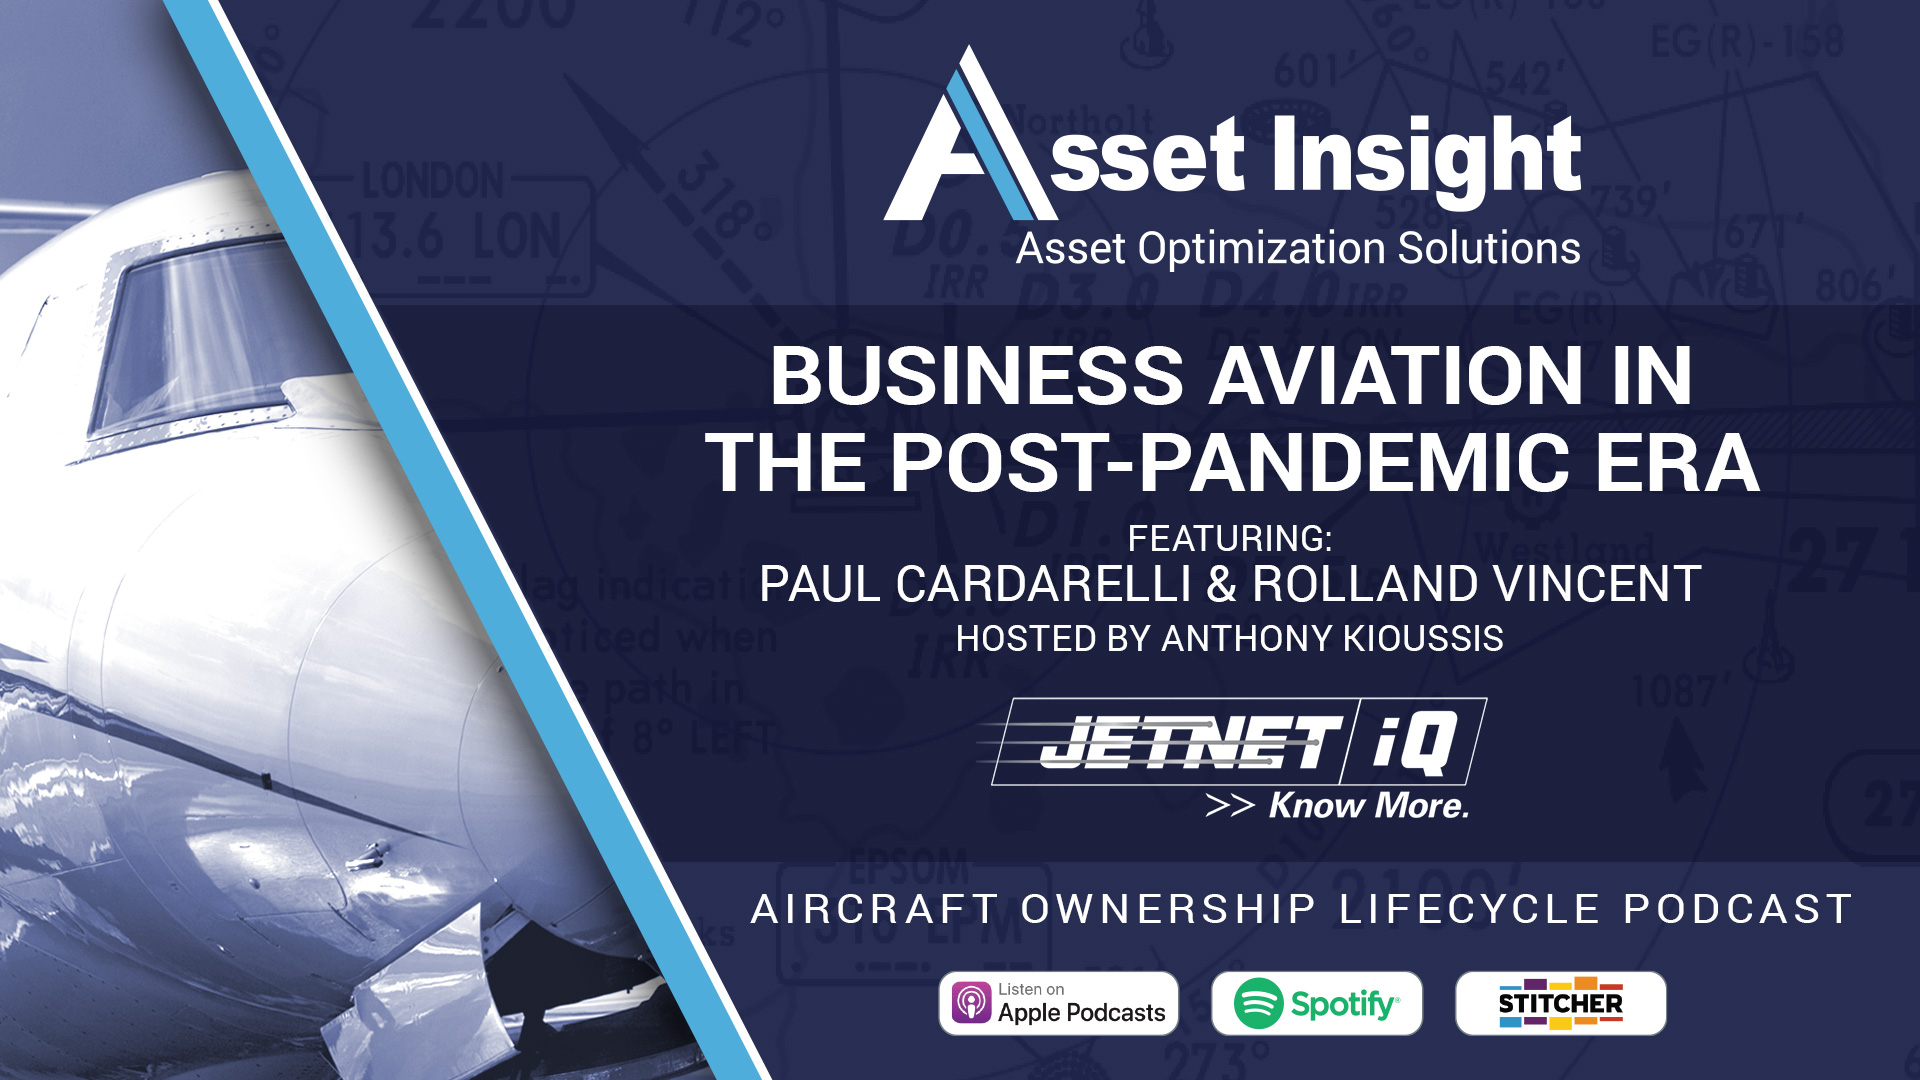 Business Aviation in the post-pandemic era